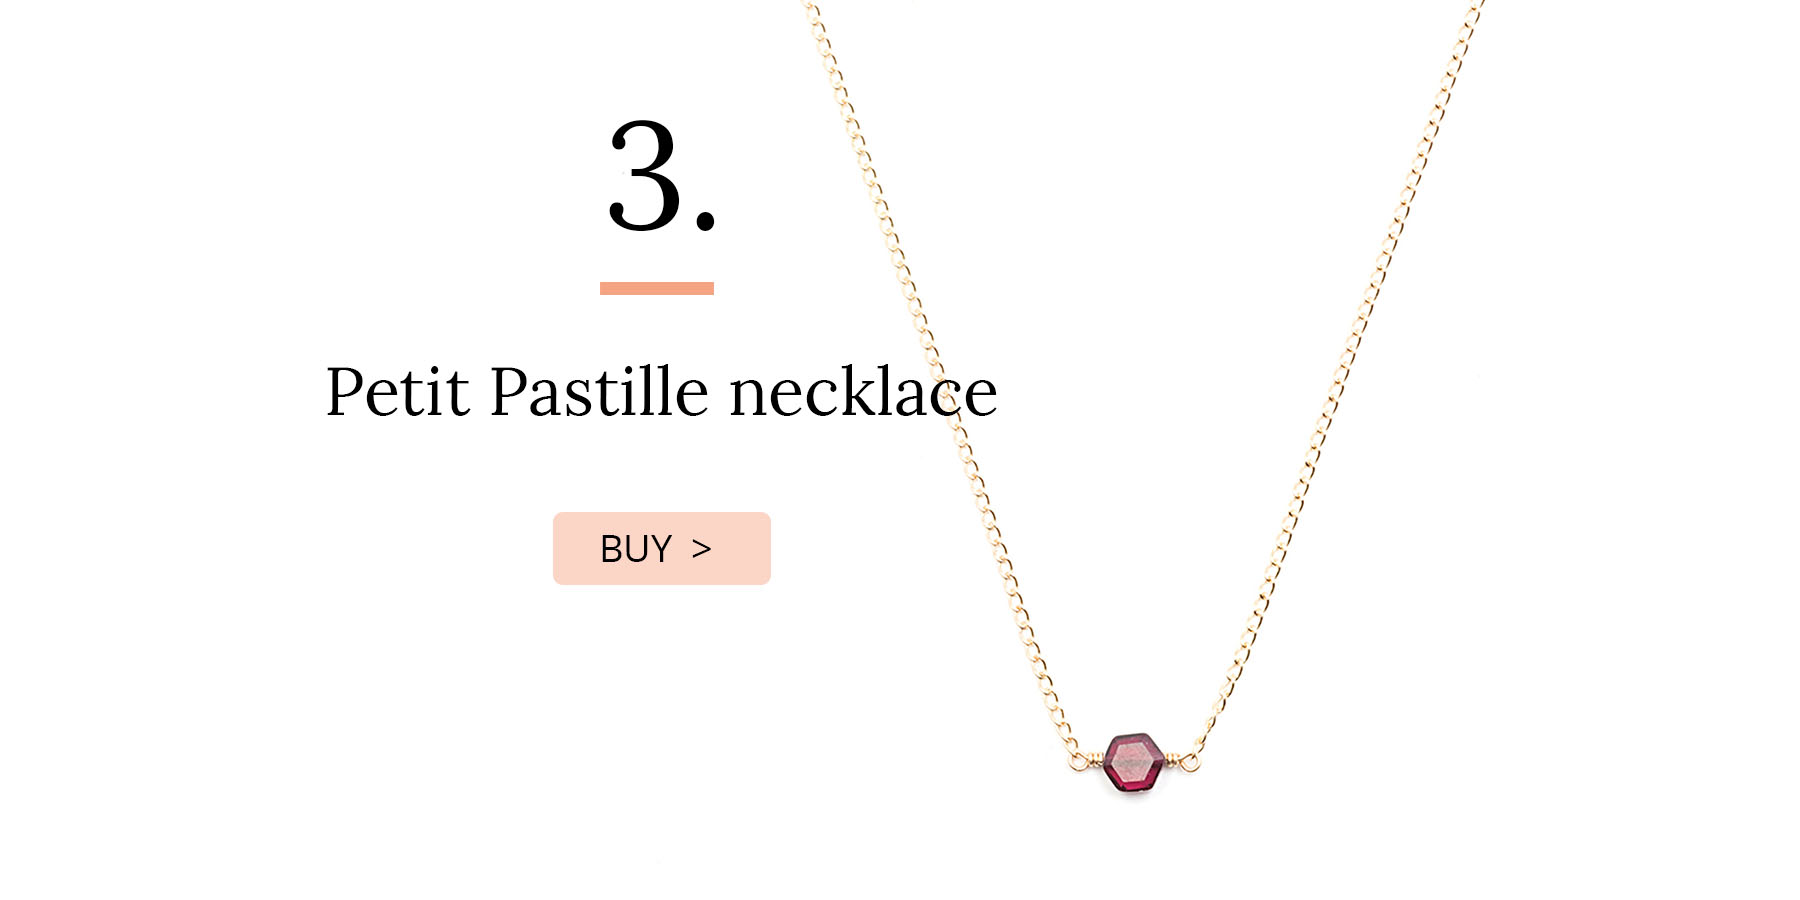 Petit Pastille necklace